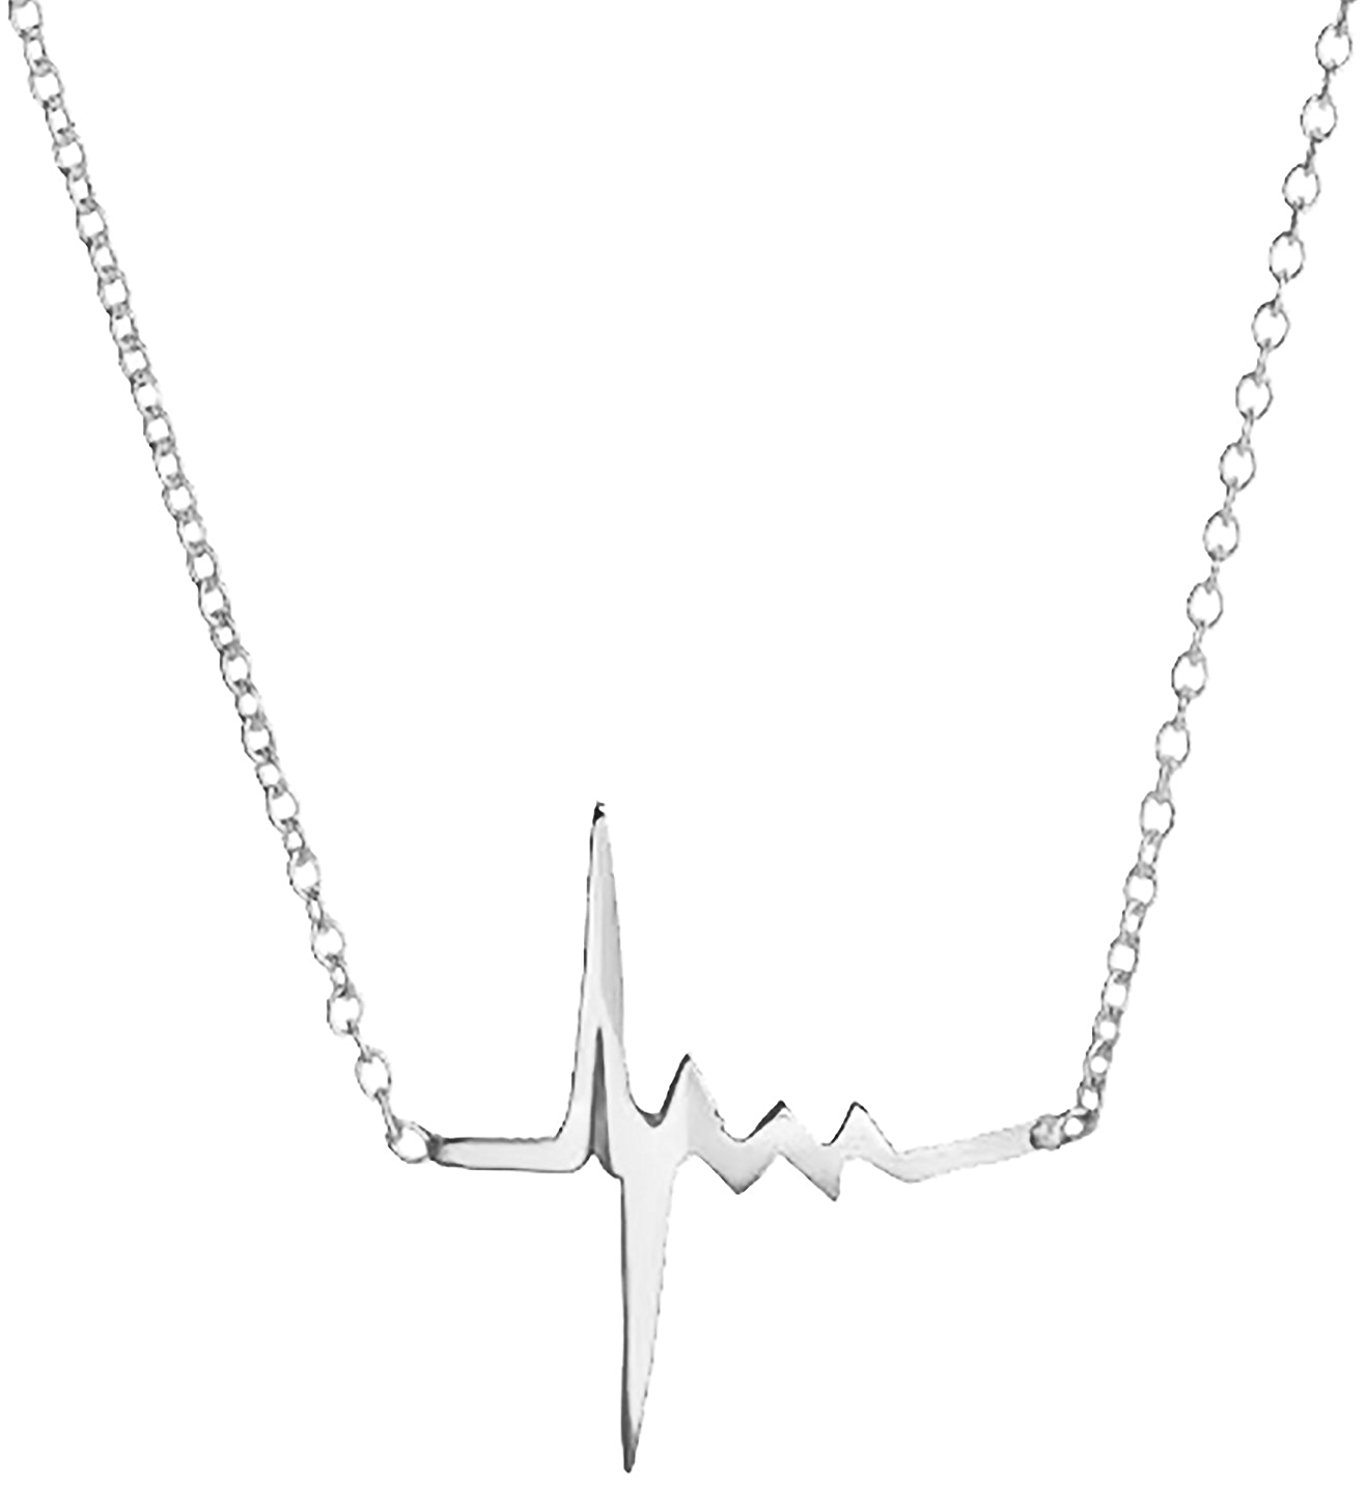 1368x1500 925 Sterling Silver Heartbeat Pendant Necklace Chain